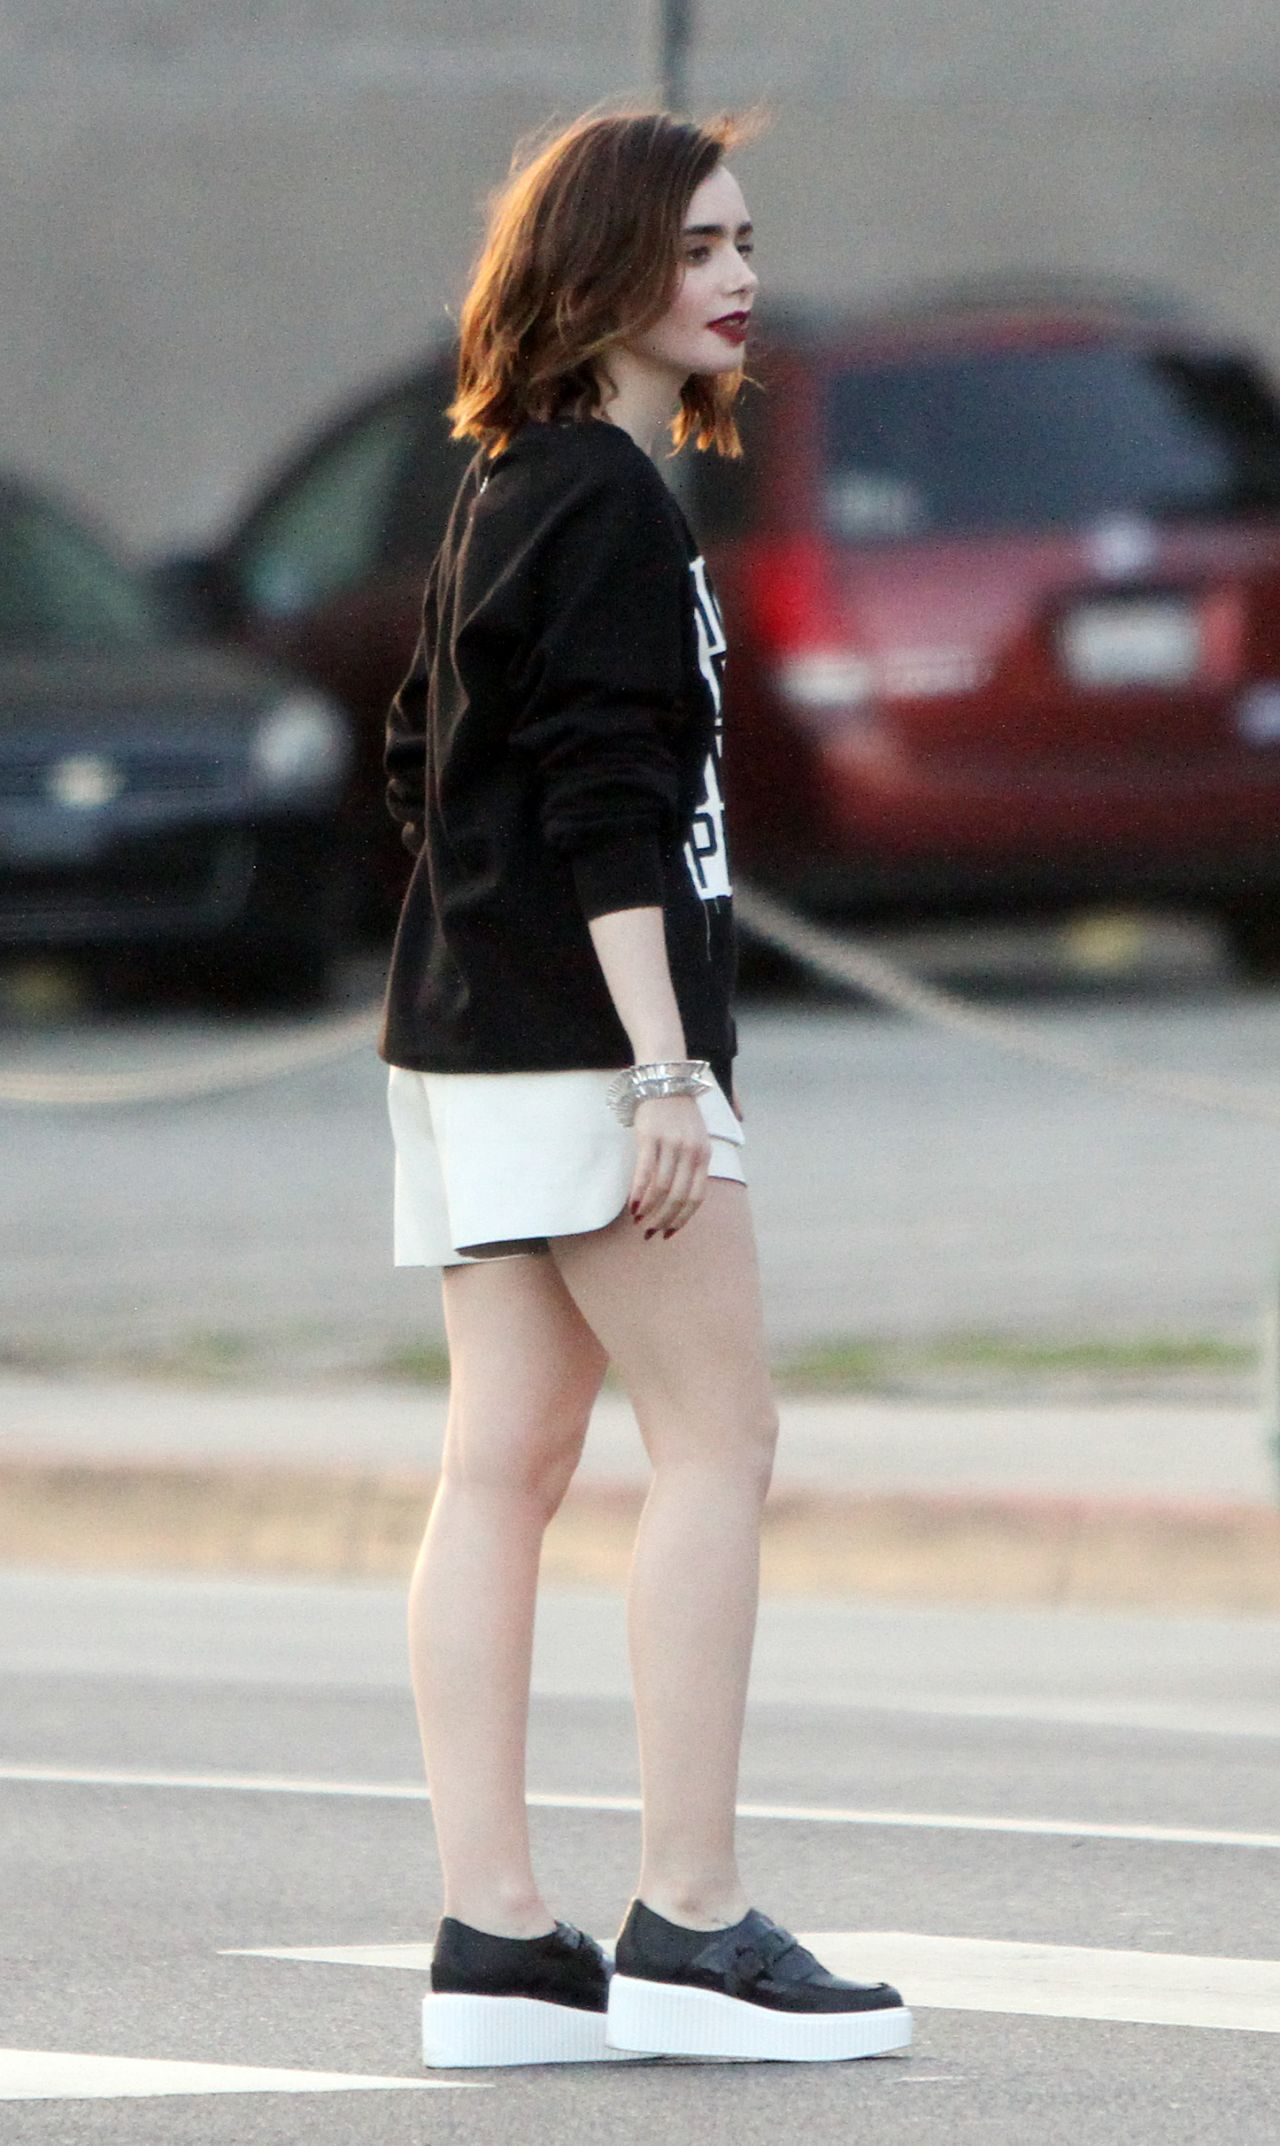 Lily Collins Photoshoot On Sunset Boulevard In Los Angeles